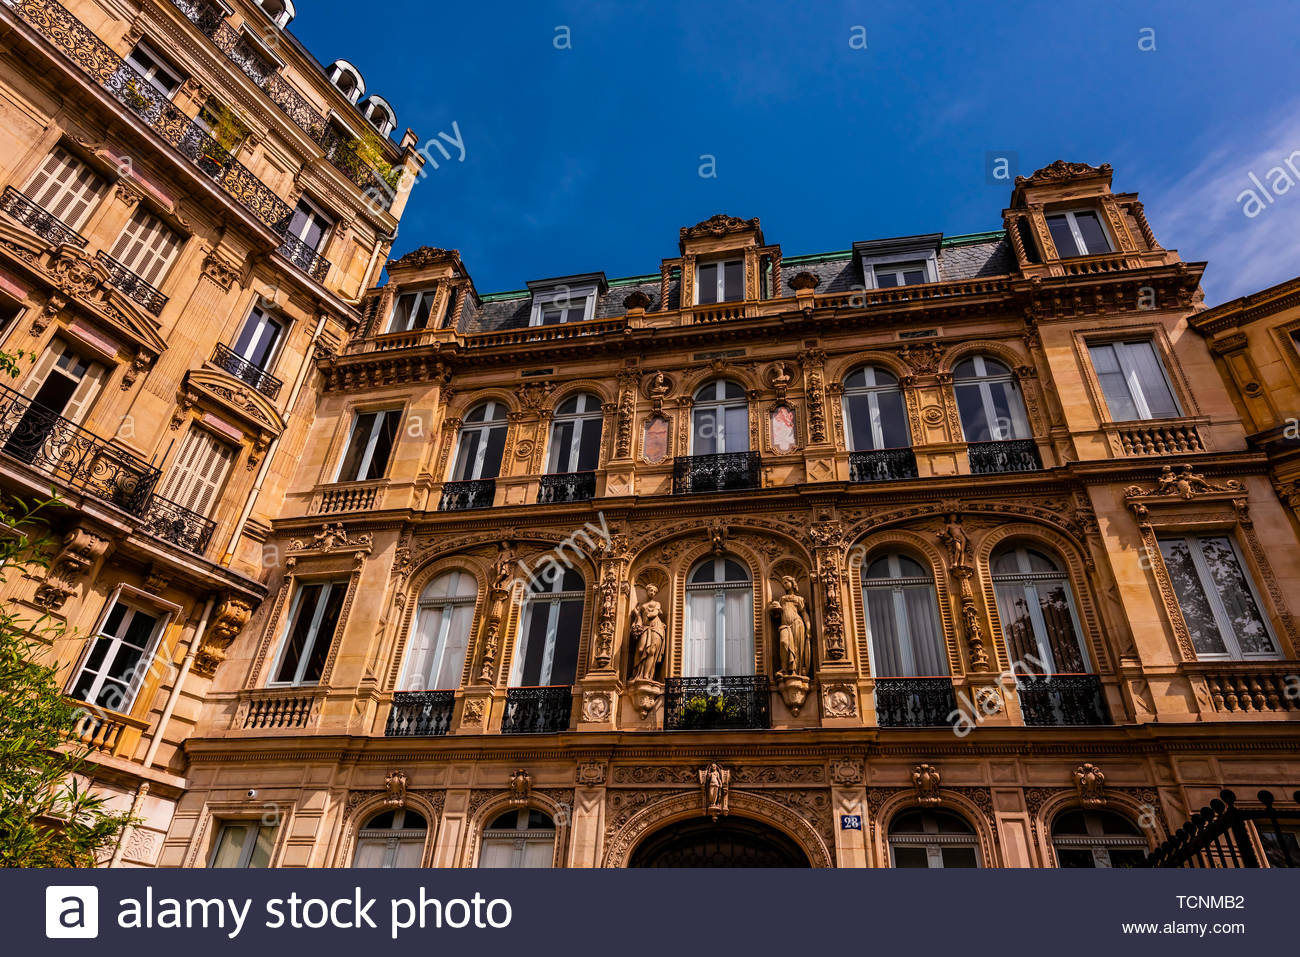 Hotel de la Paiva (Mansion of La Paiva) is an historic townhouse located at 28 Place St. Georges in the 9th arrondissement, Paris, France. - Stock Image